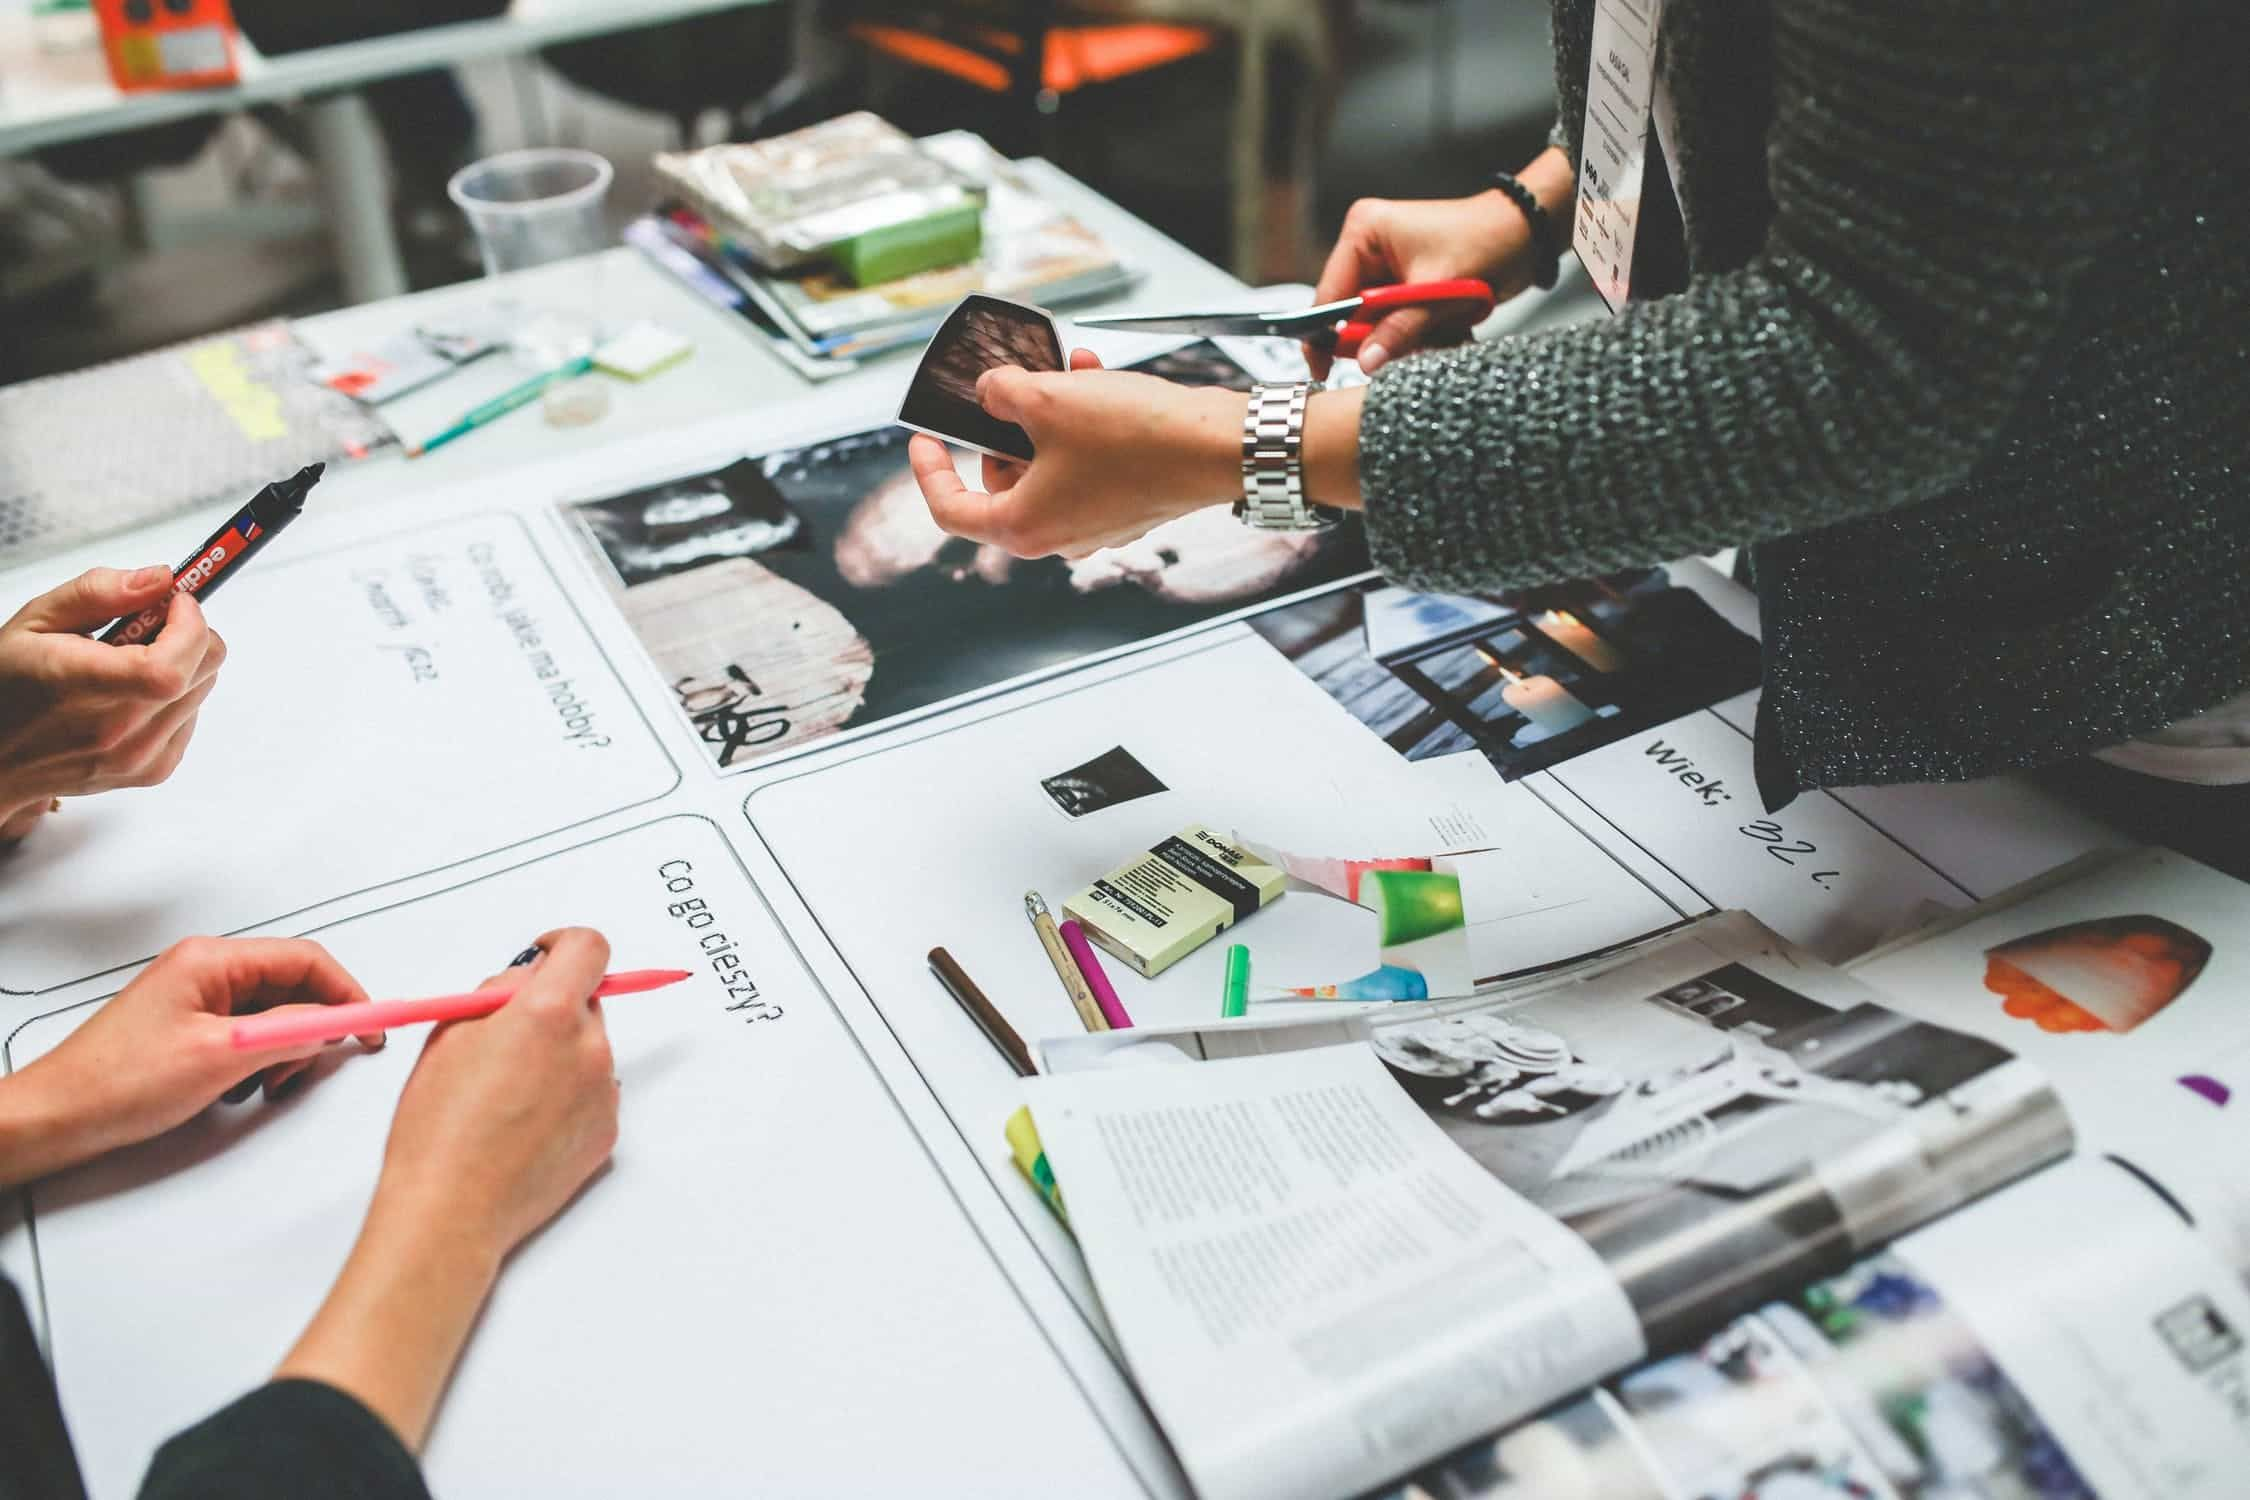 Service User Experience projects and consulting, UX Design, Design Sprints, UX Designer, UX Consultant Kingsley Media LTD